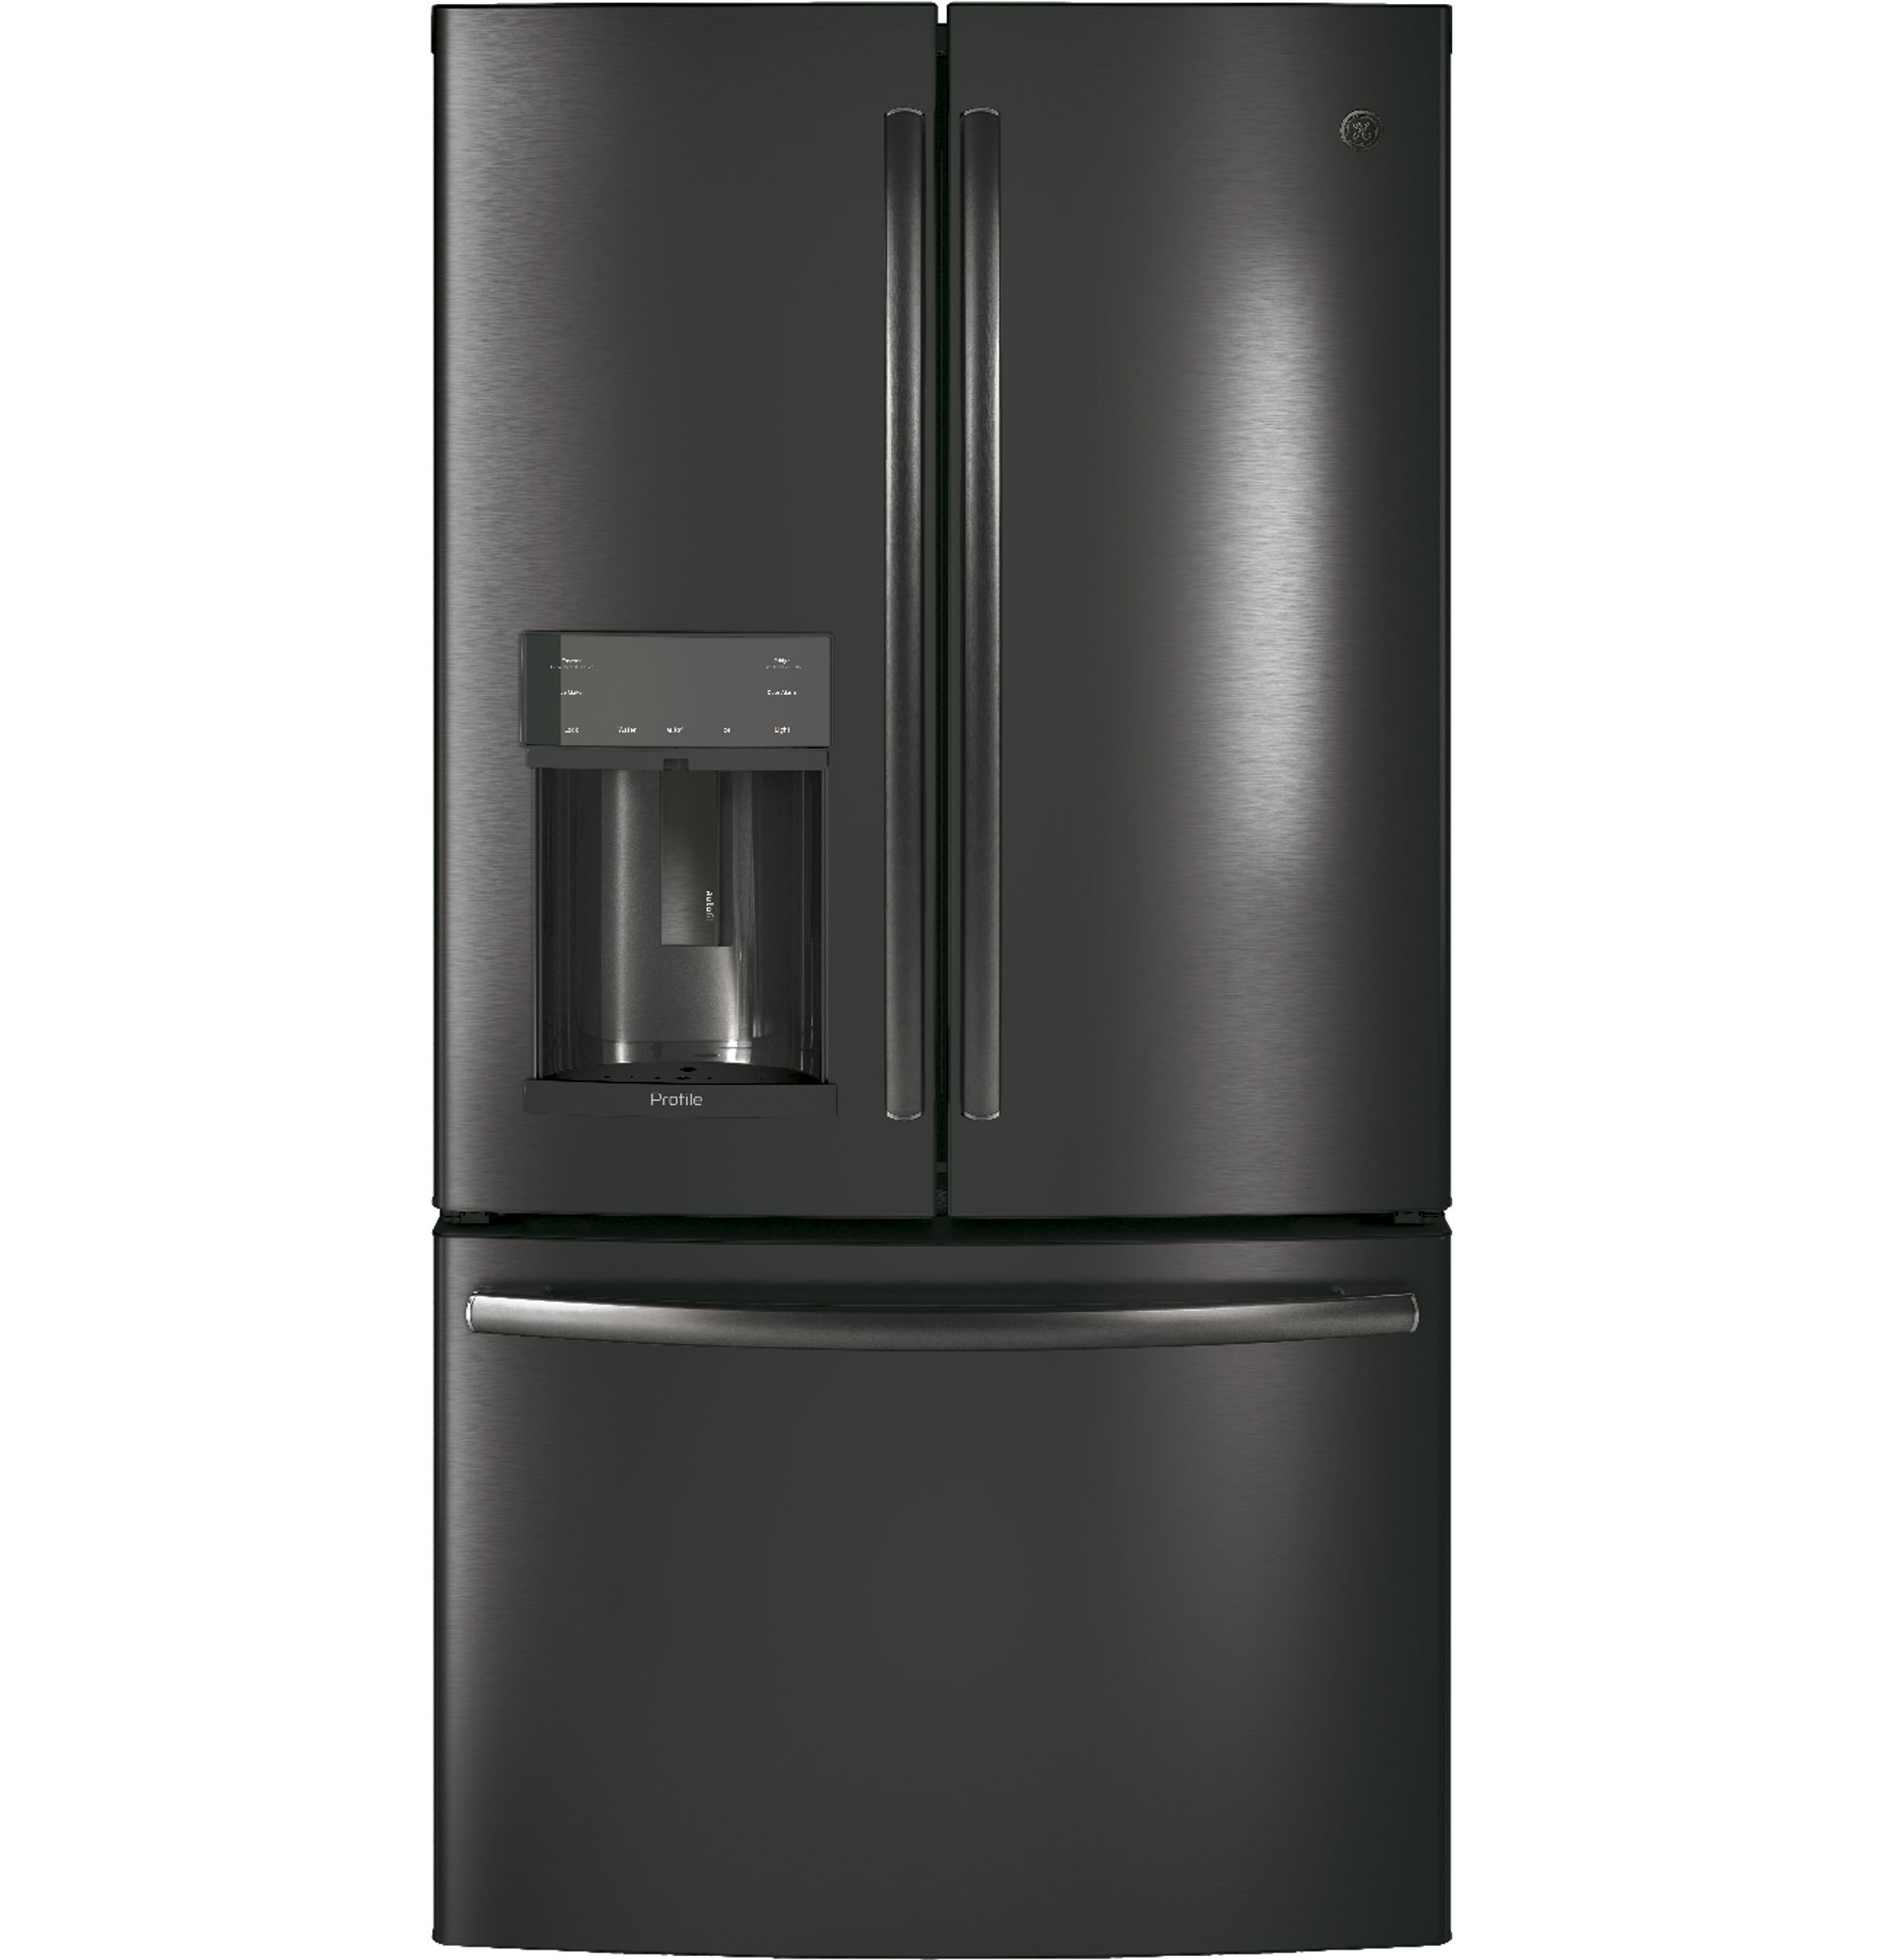 Profile GE Profile™ Series 27.8 Cu. Ft. French-Door Refrigerator with Door In Door and Hands-Free AutoFill